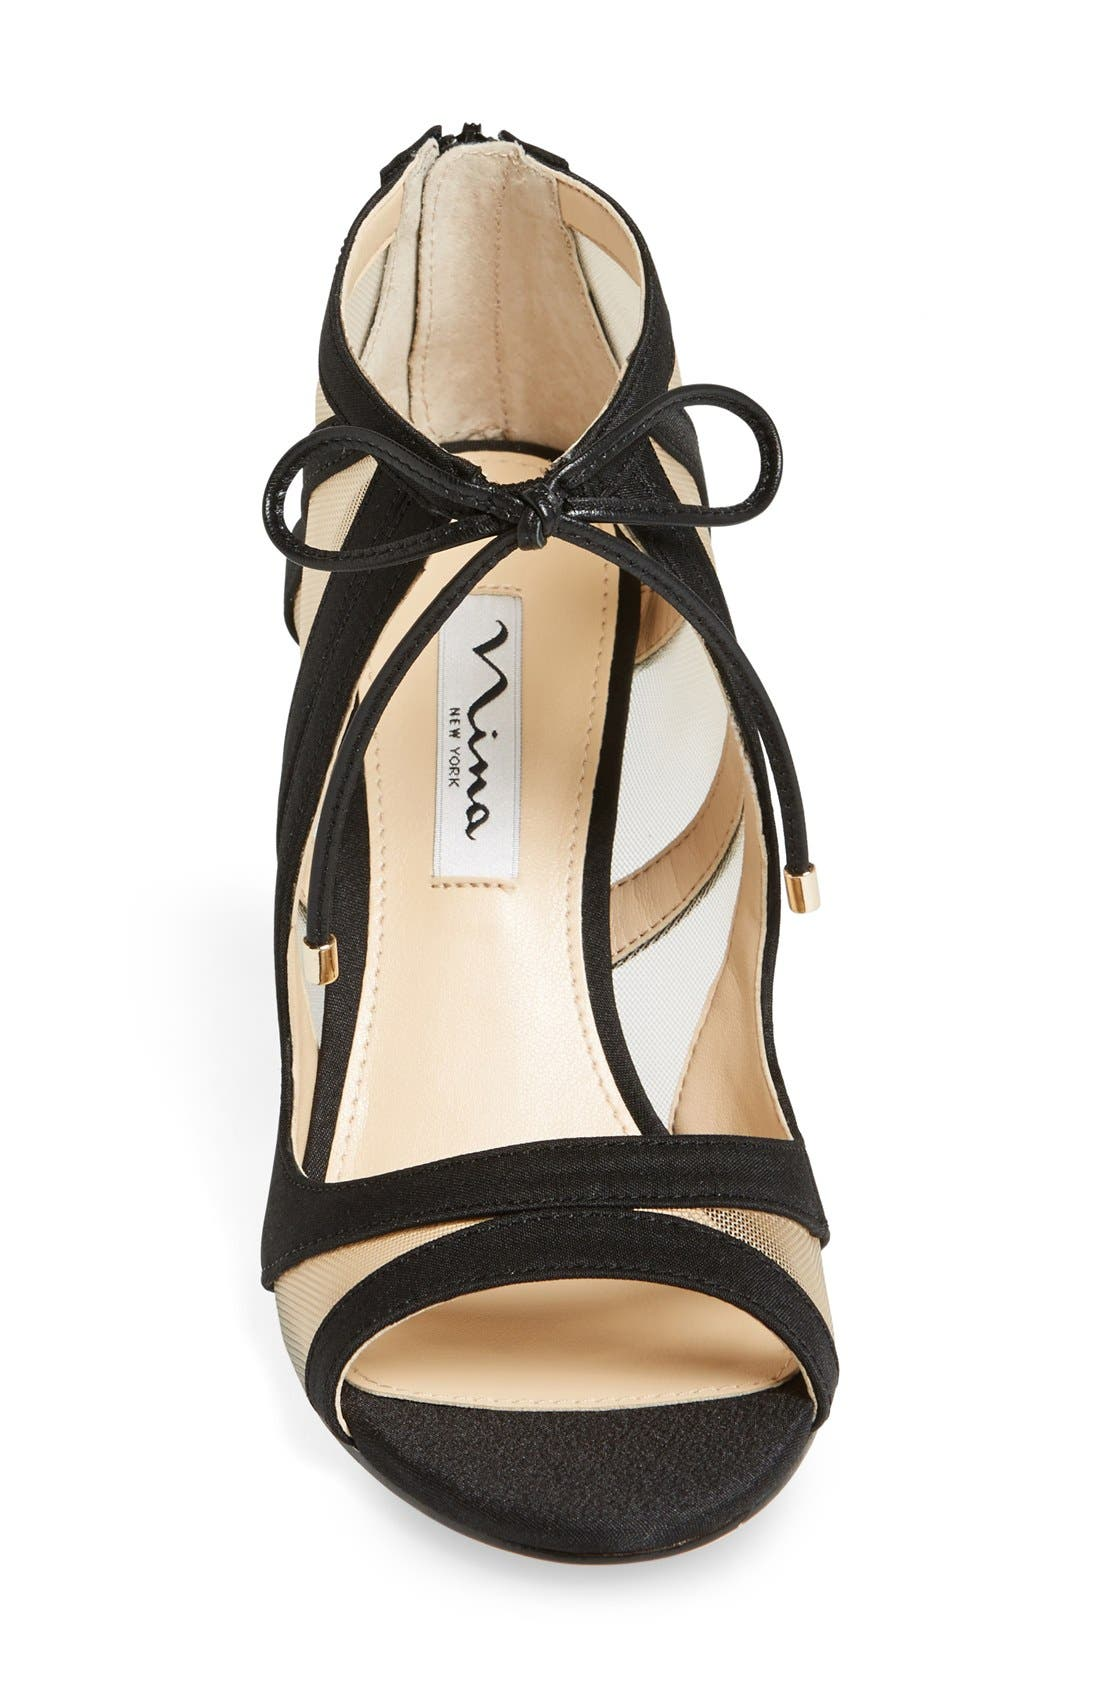 NINA, Cherie Illusion Sandal, Alternate thumbnail 2, color, BLACK SATIN/ NUDE MESH